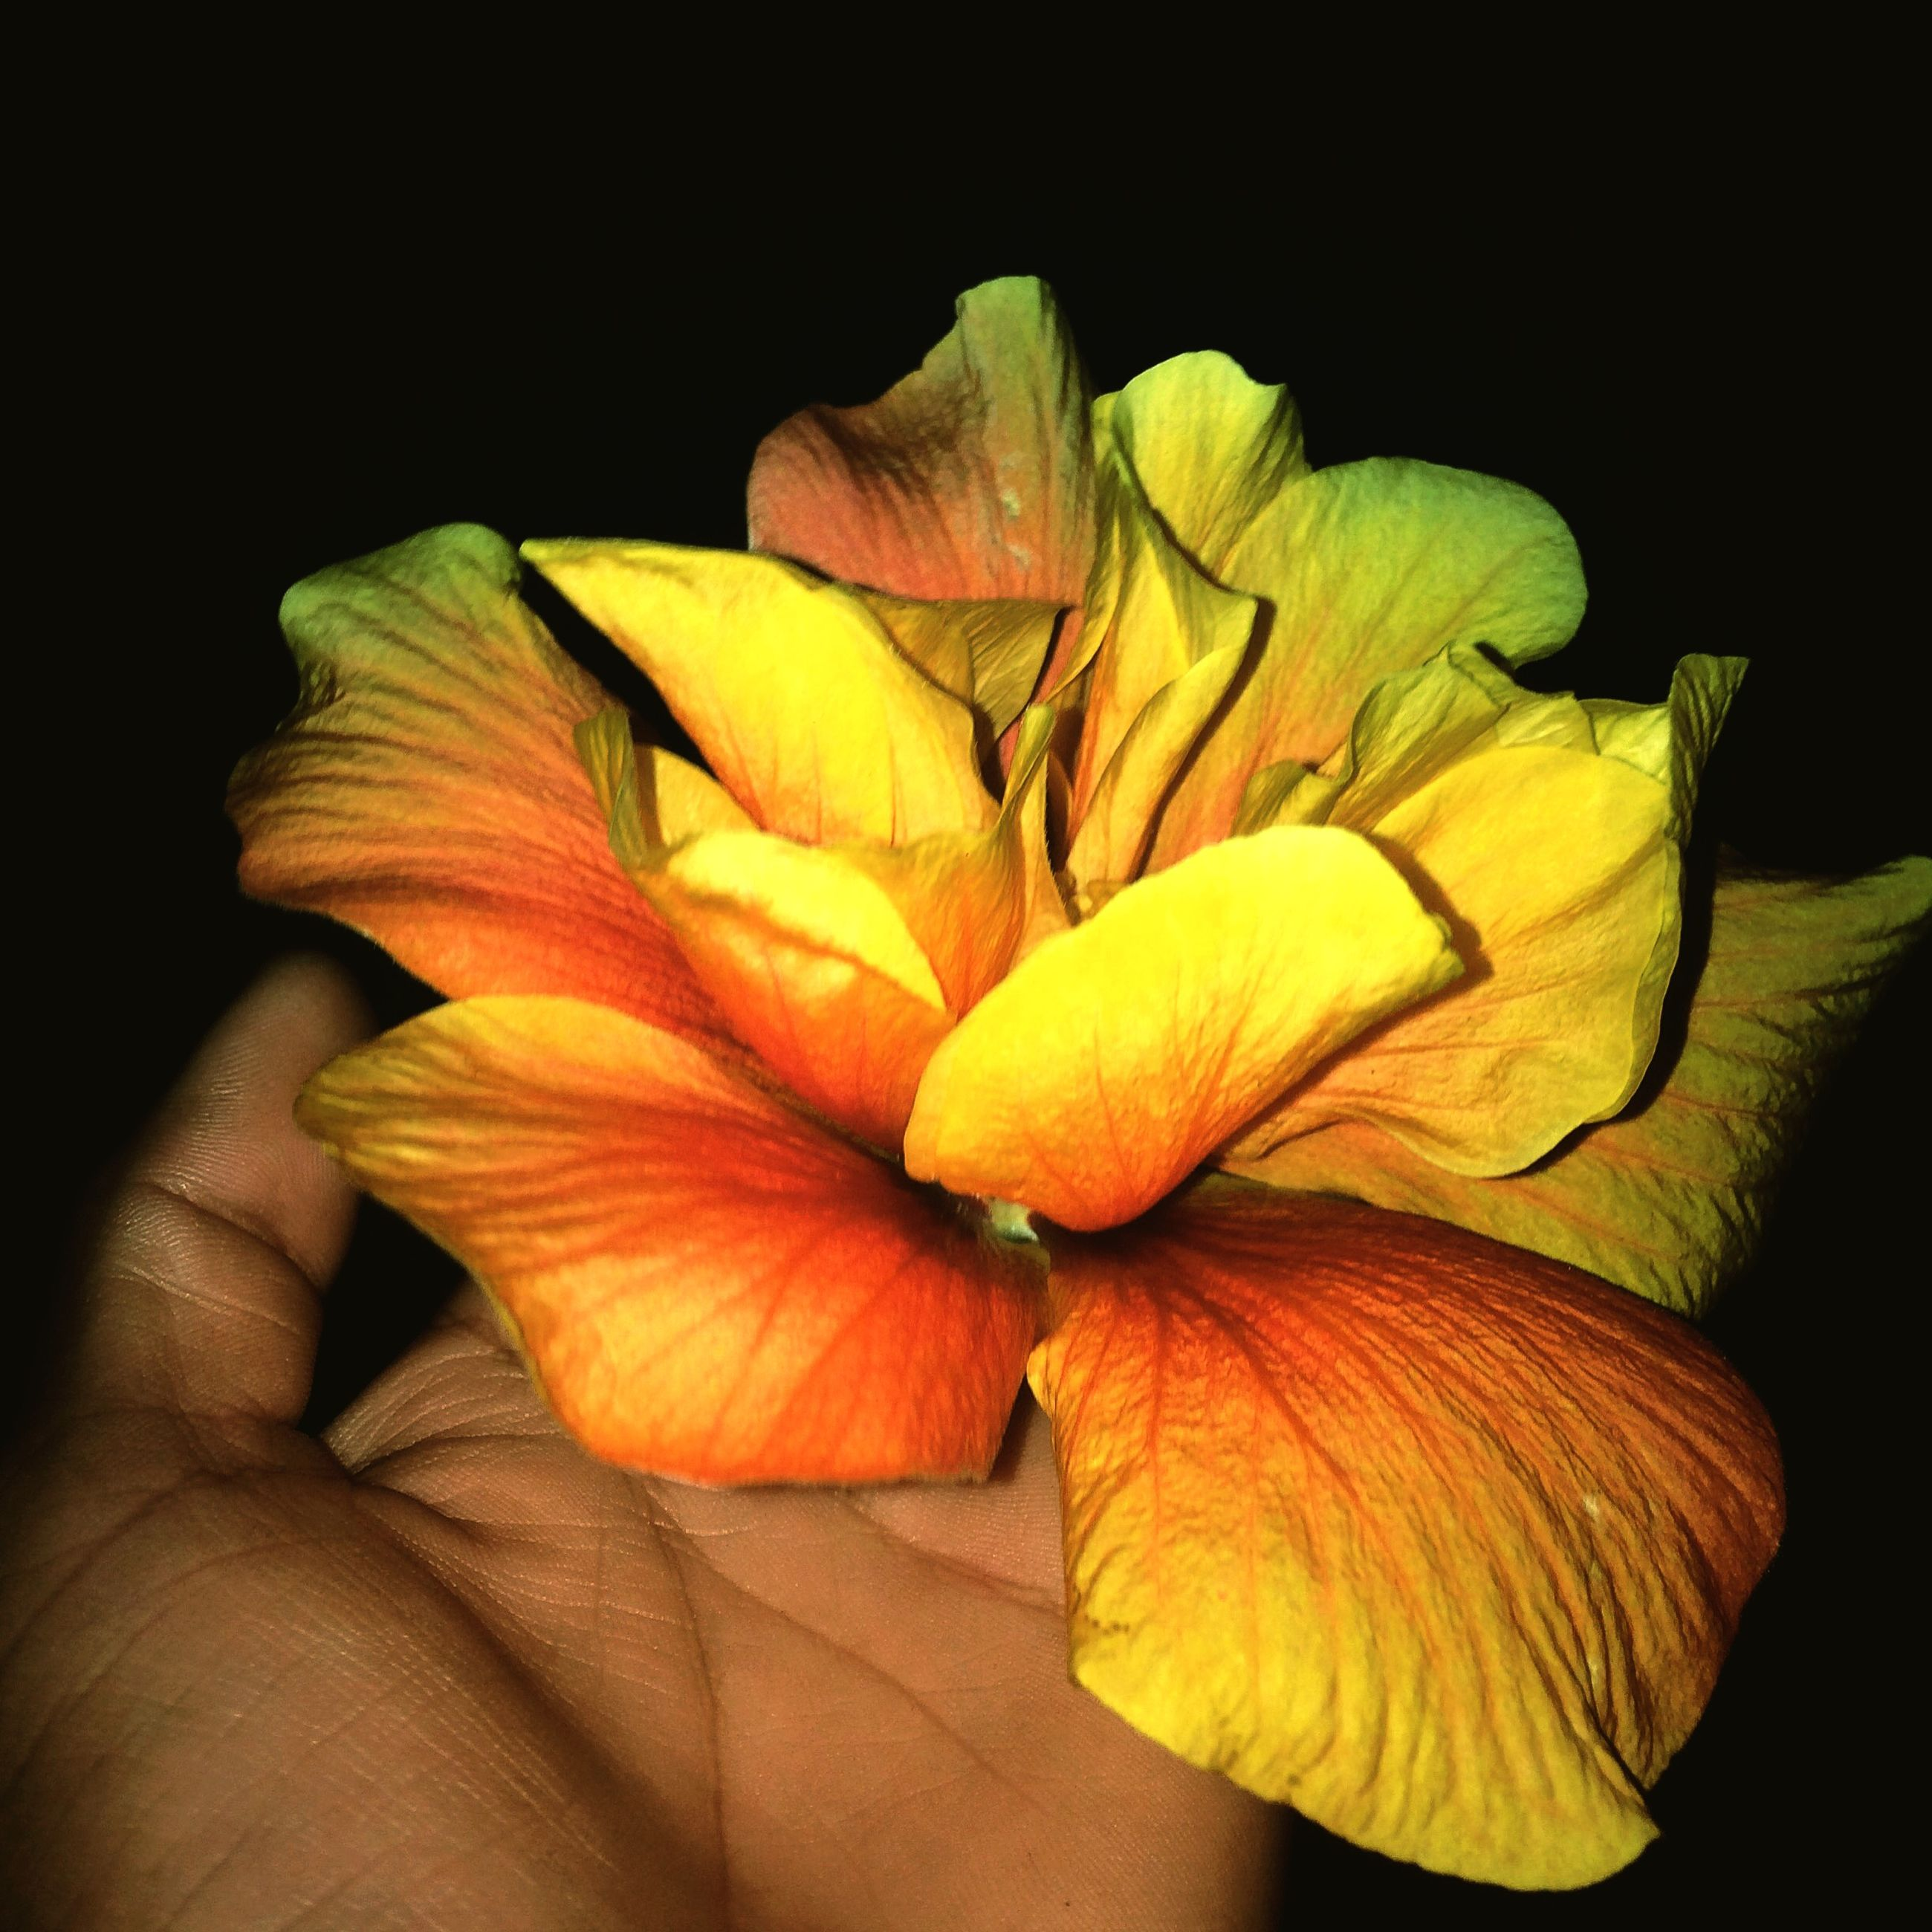 flower, petal, flower head, freshness, fragility, yellow, close-up, beauty in nature, single flower, studio shot, nature, black background, growth, orange color, stamen, plant, blooming, blossom, pollen, indoors